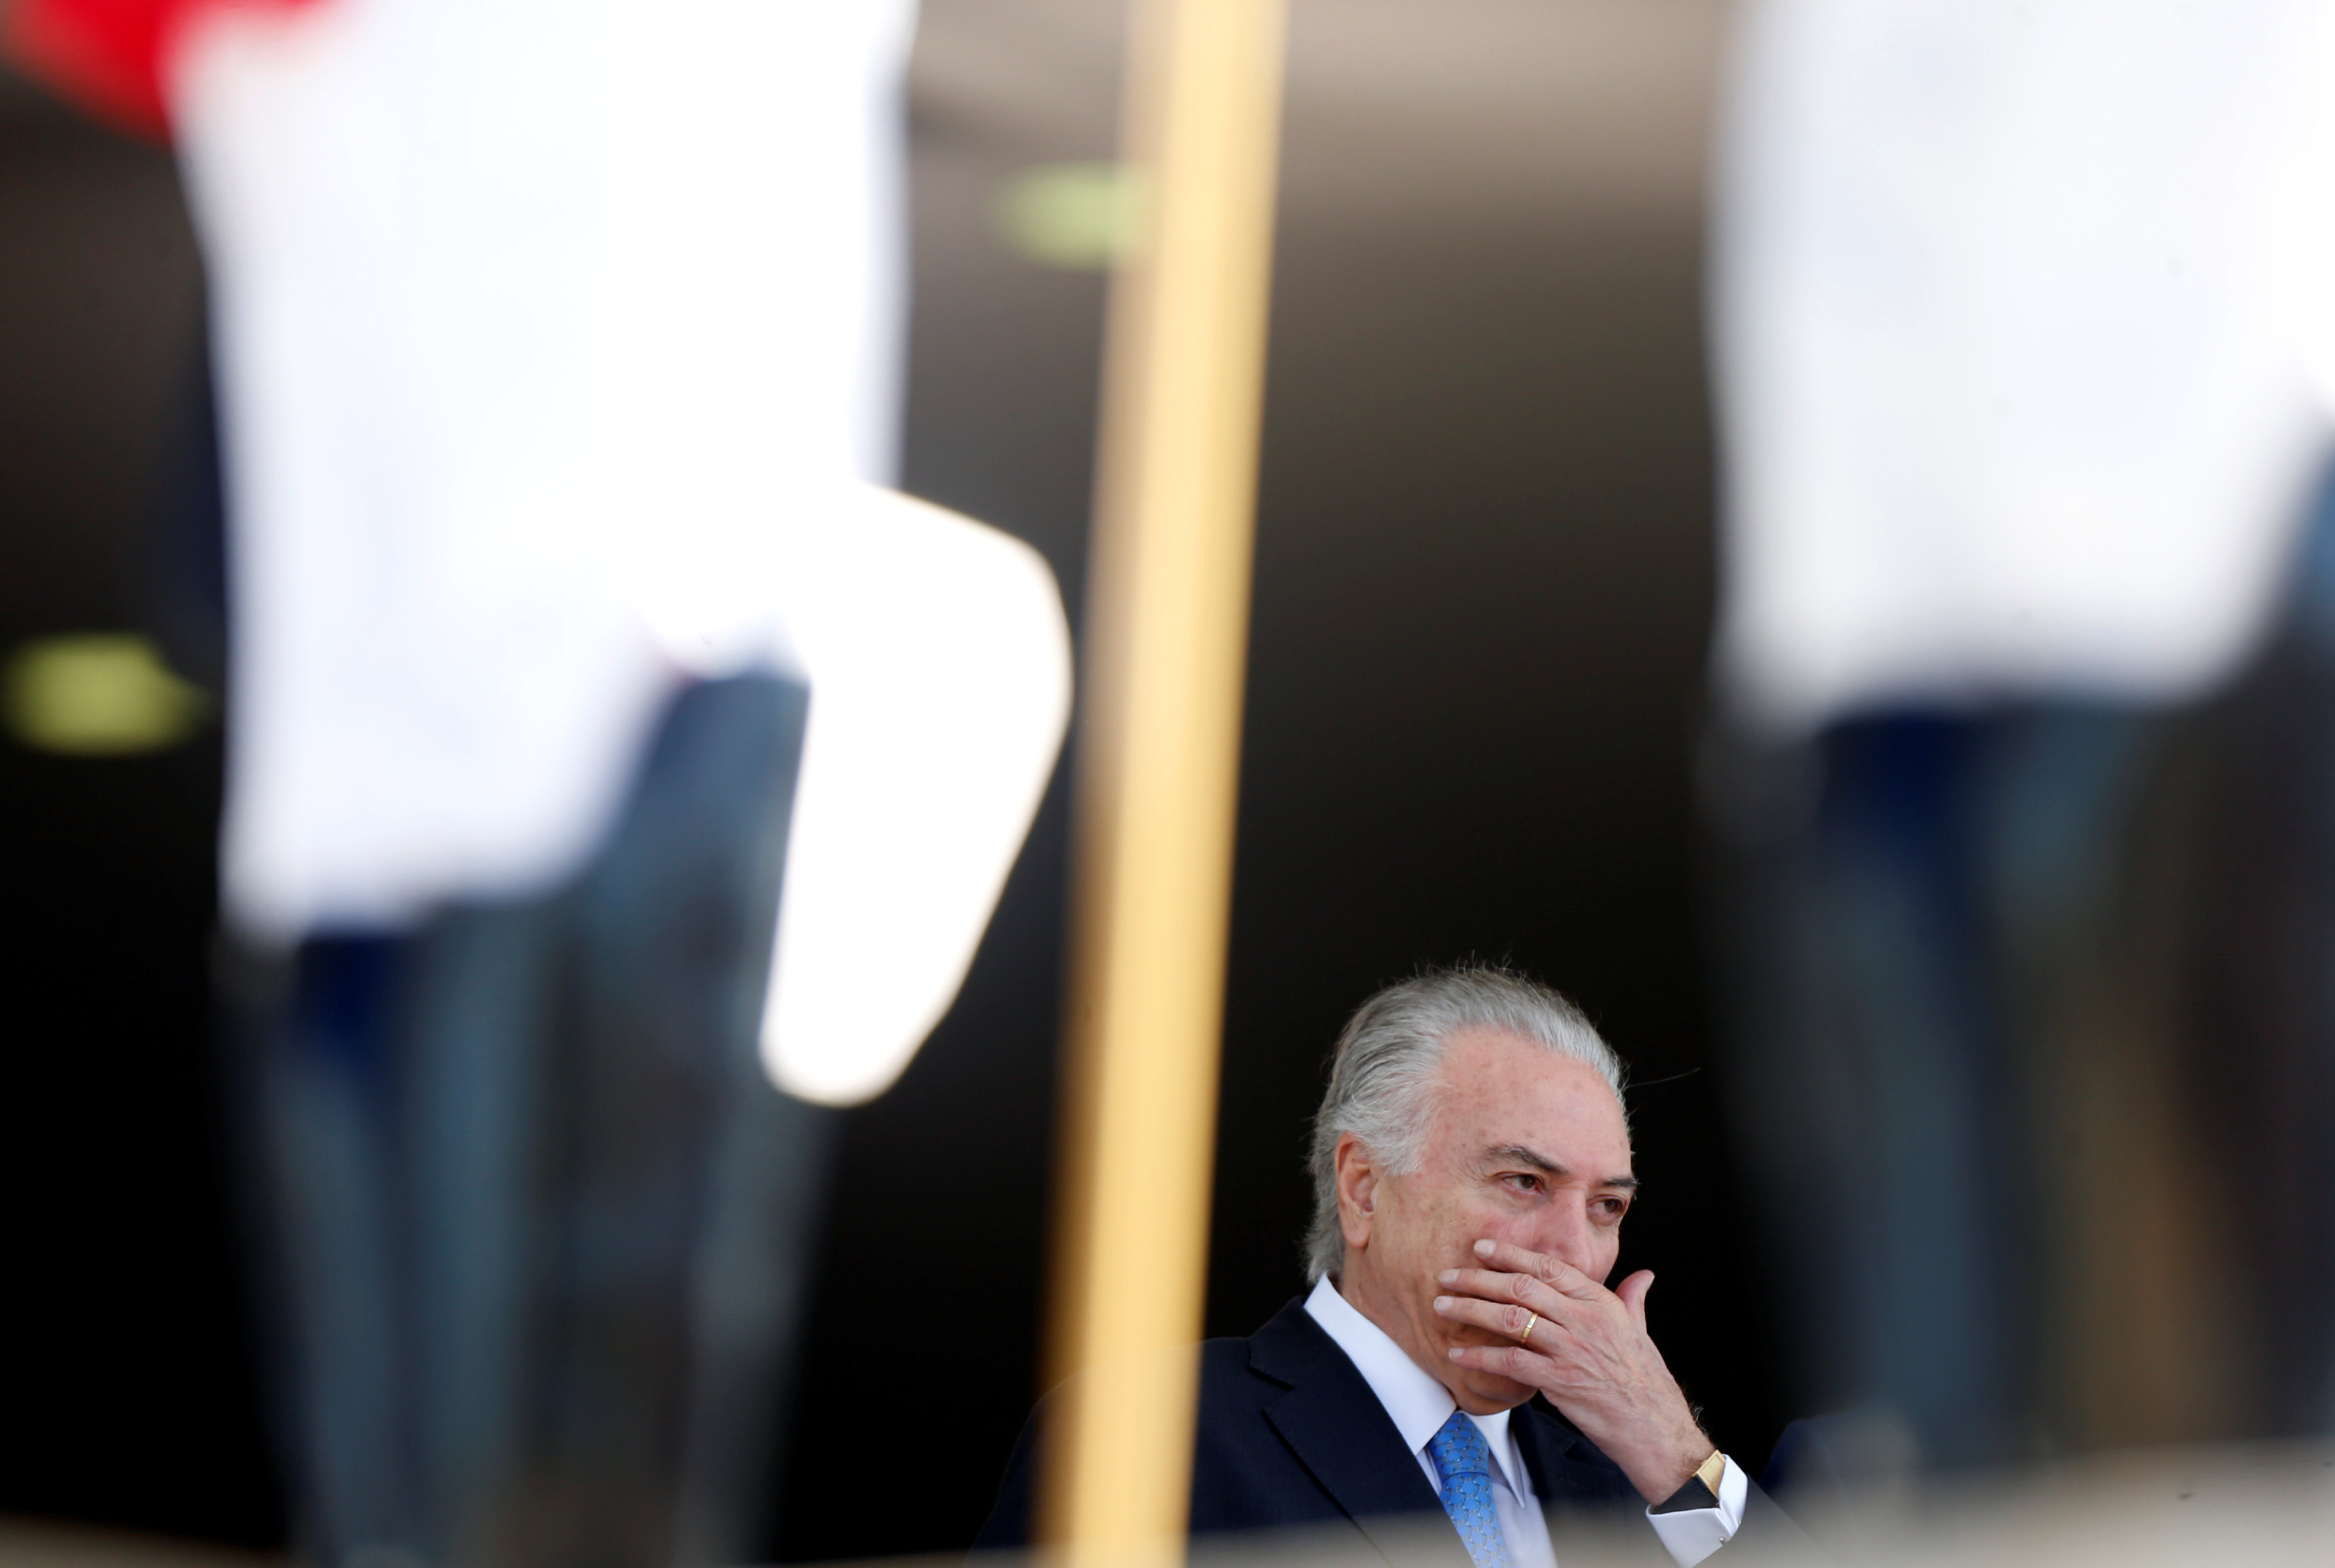 Brazil's President Michel Temer gestures as he stands behind honour guard before welcoming his counterparts during Mercosur trade bloc annual summit in Brasilia, Brazil, December 21, 2017. REUTERS/Adriano Machado